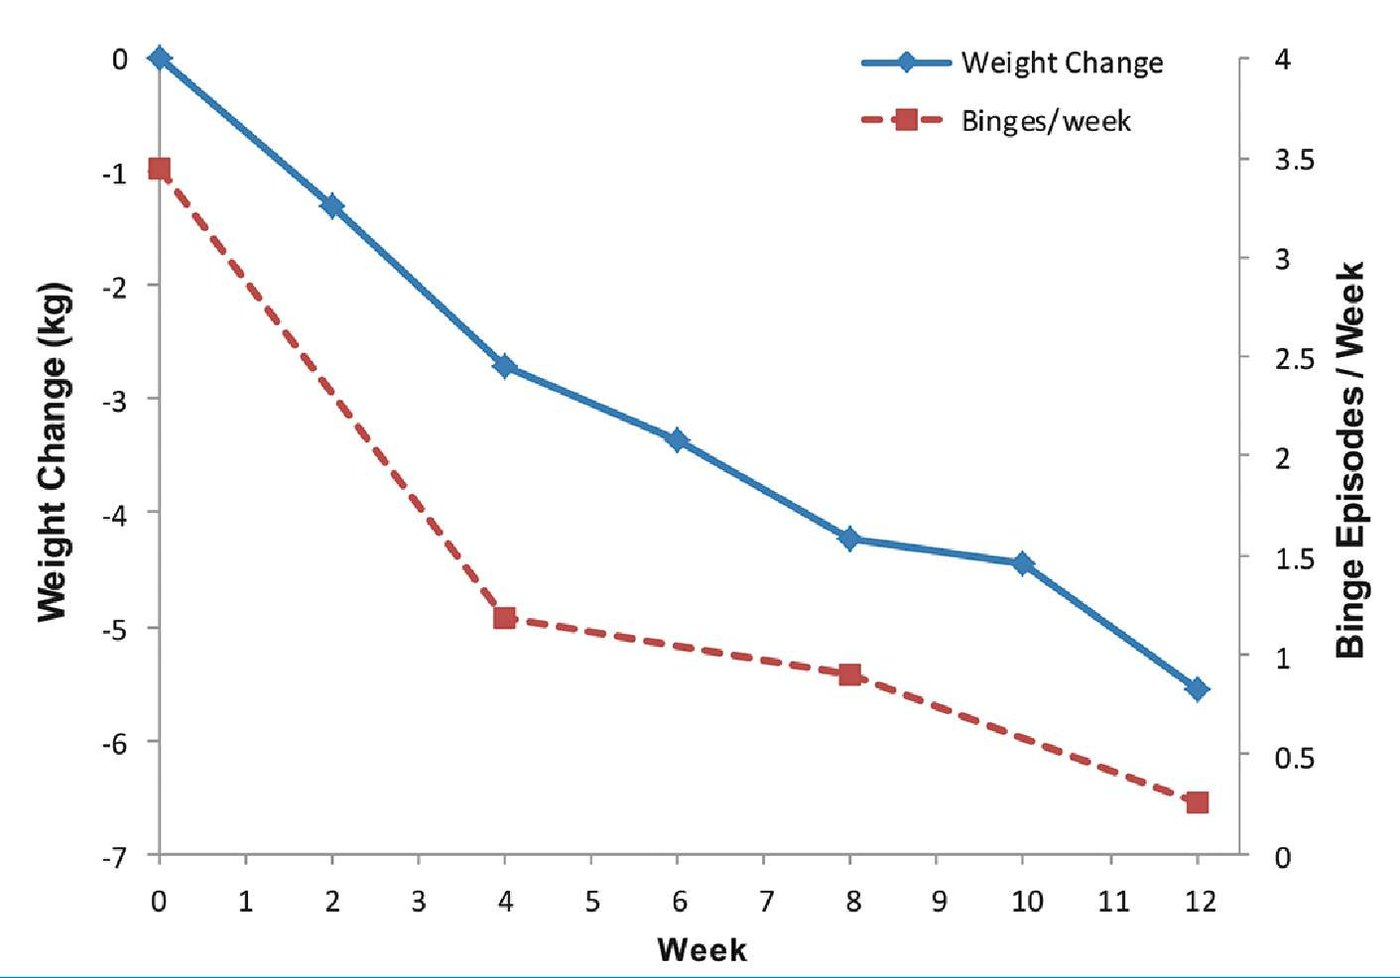 FIGURE 1. Cumulative mean weight (kg) change and weekly binge episodes over 12 weeks ofphentermine–topiramate treatment